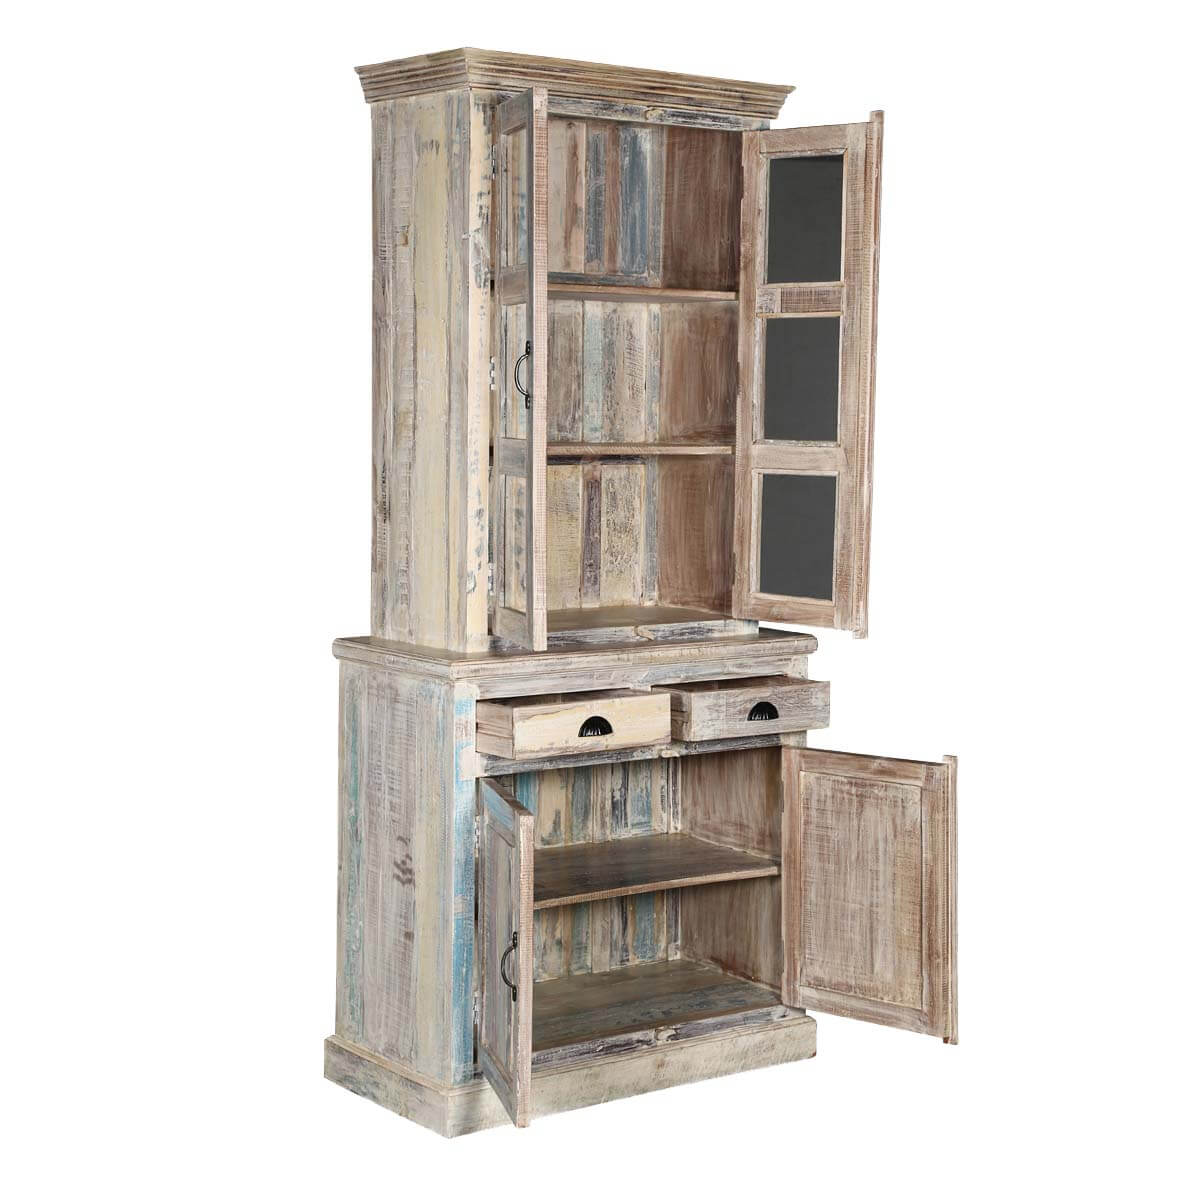 Palazzo white rustic solid wood dining china cabinet